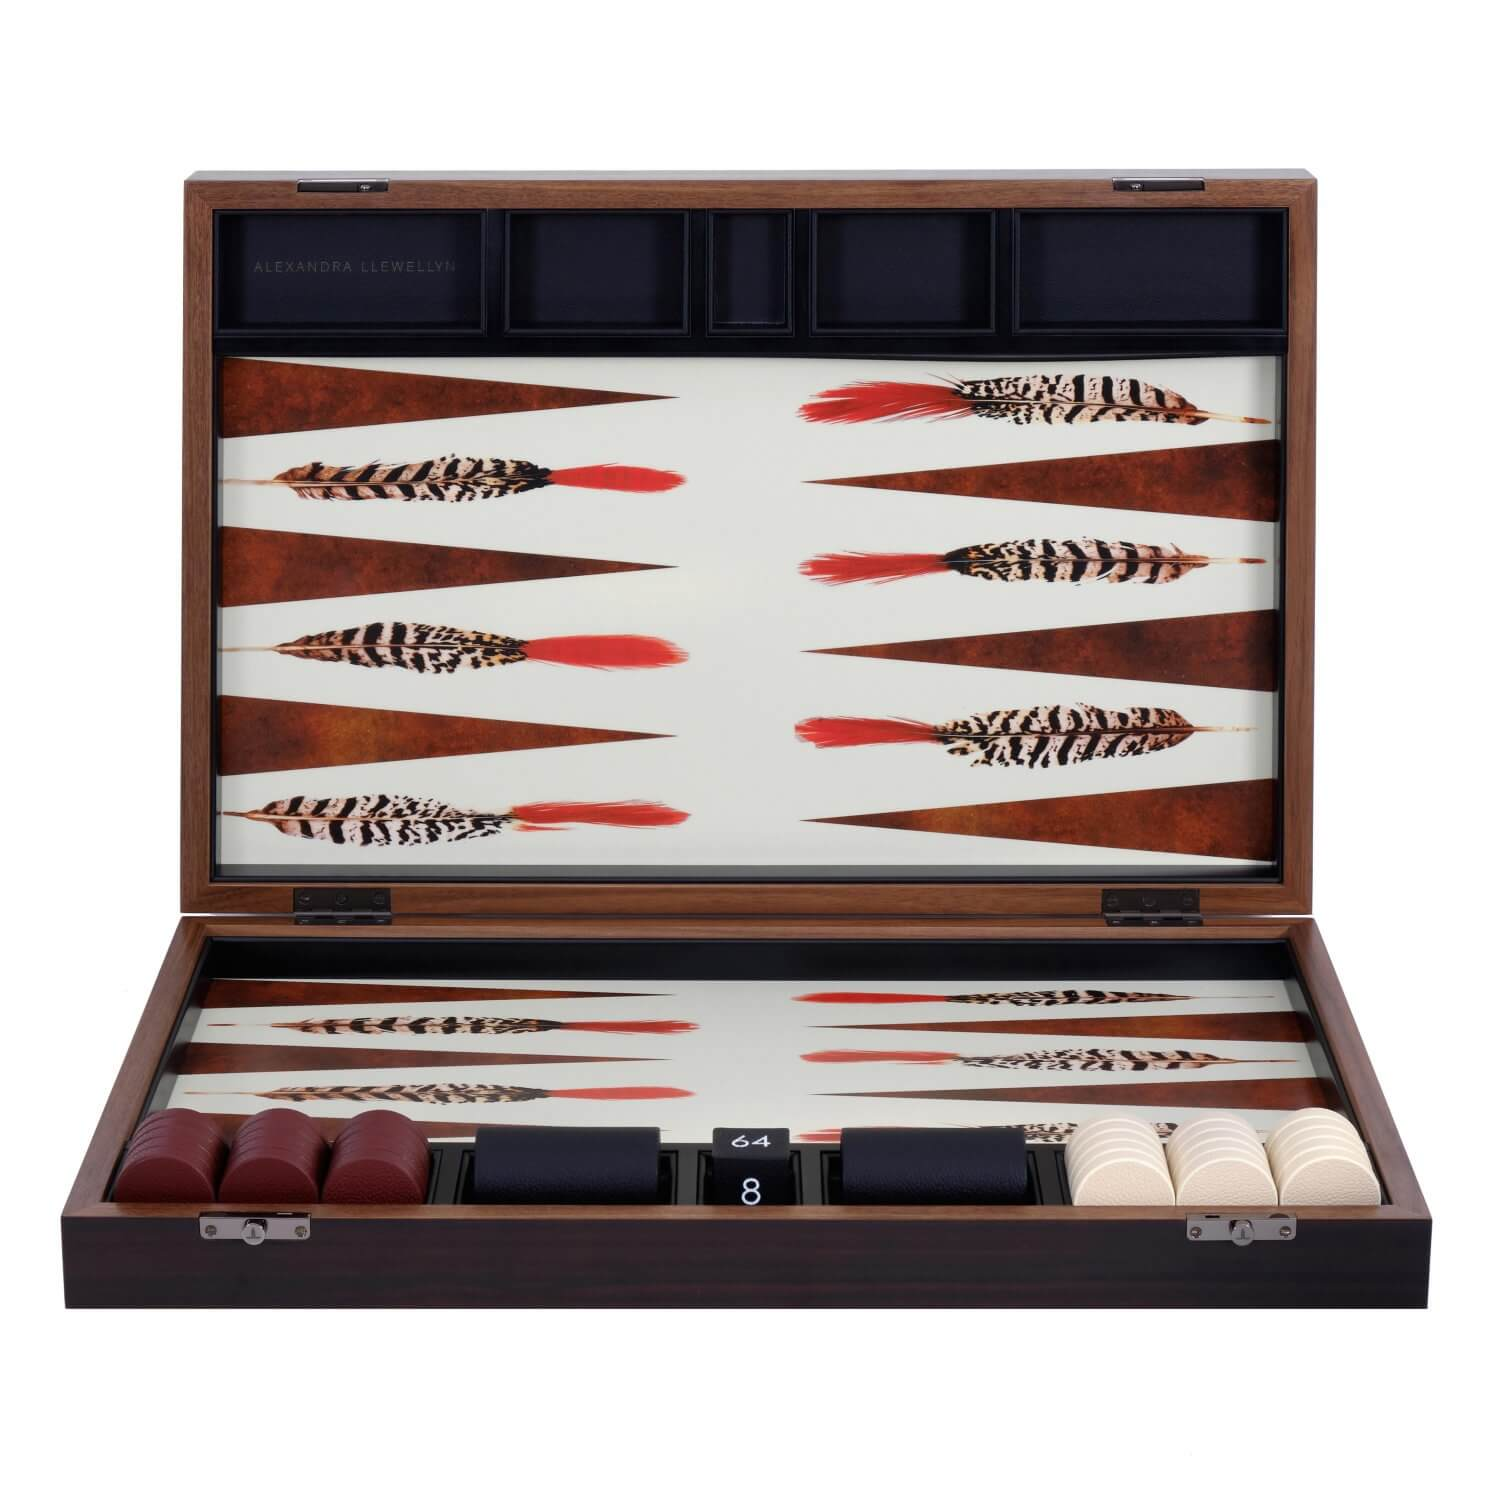 Black and White Feather backgammon set in a Fumed Eucalyptus box with red and cream playing pieces